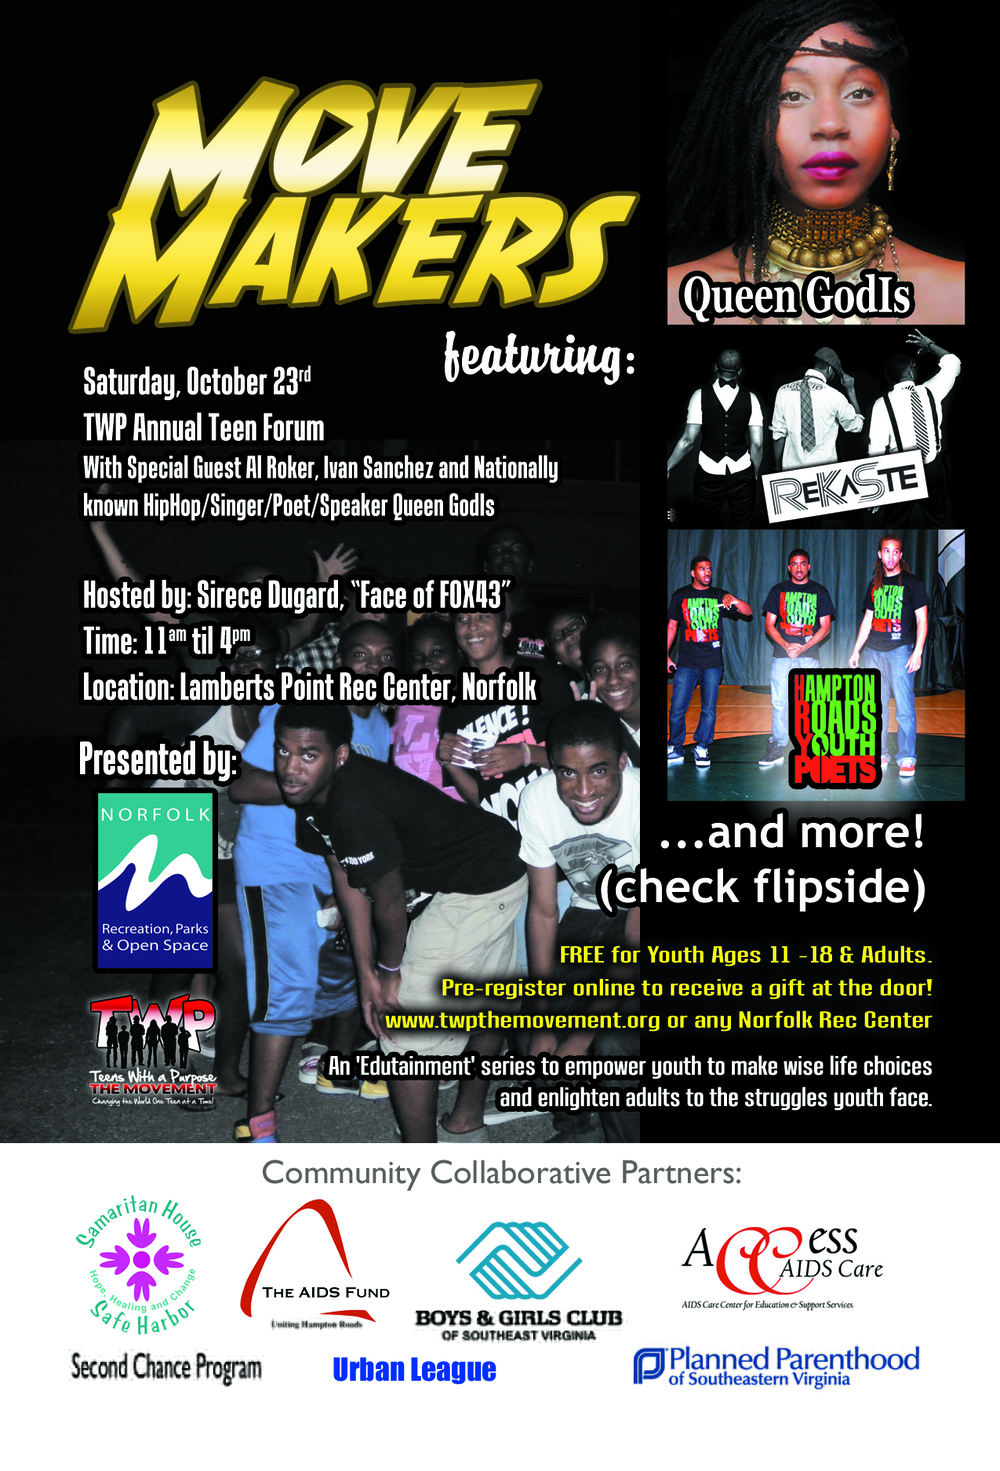 Move-Makers-flyer-front-4x6-300dpi-cmyk.jpg